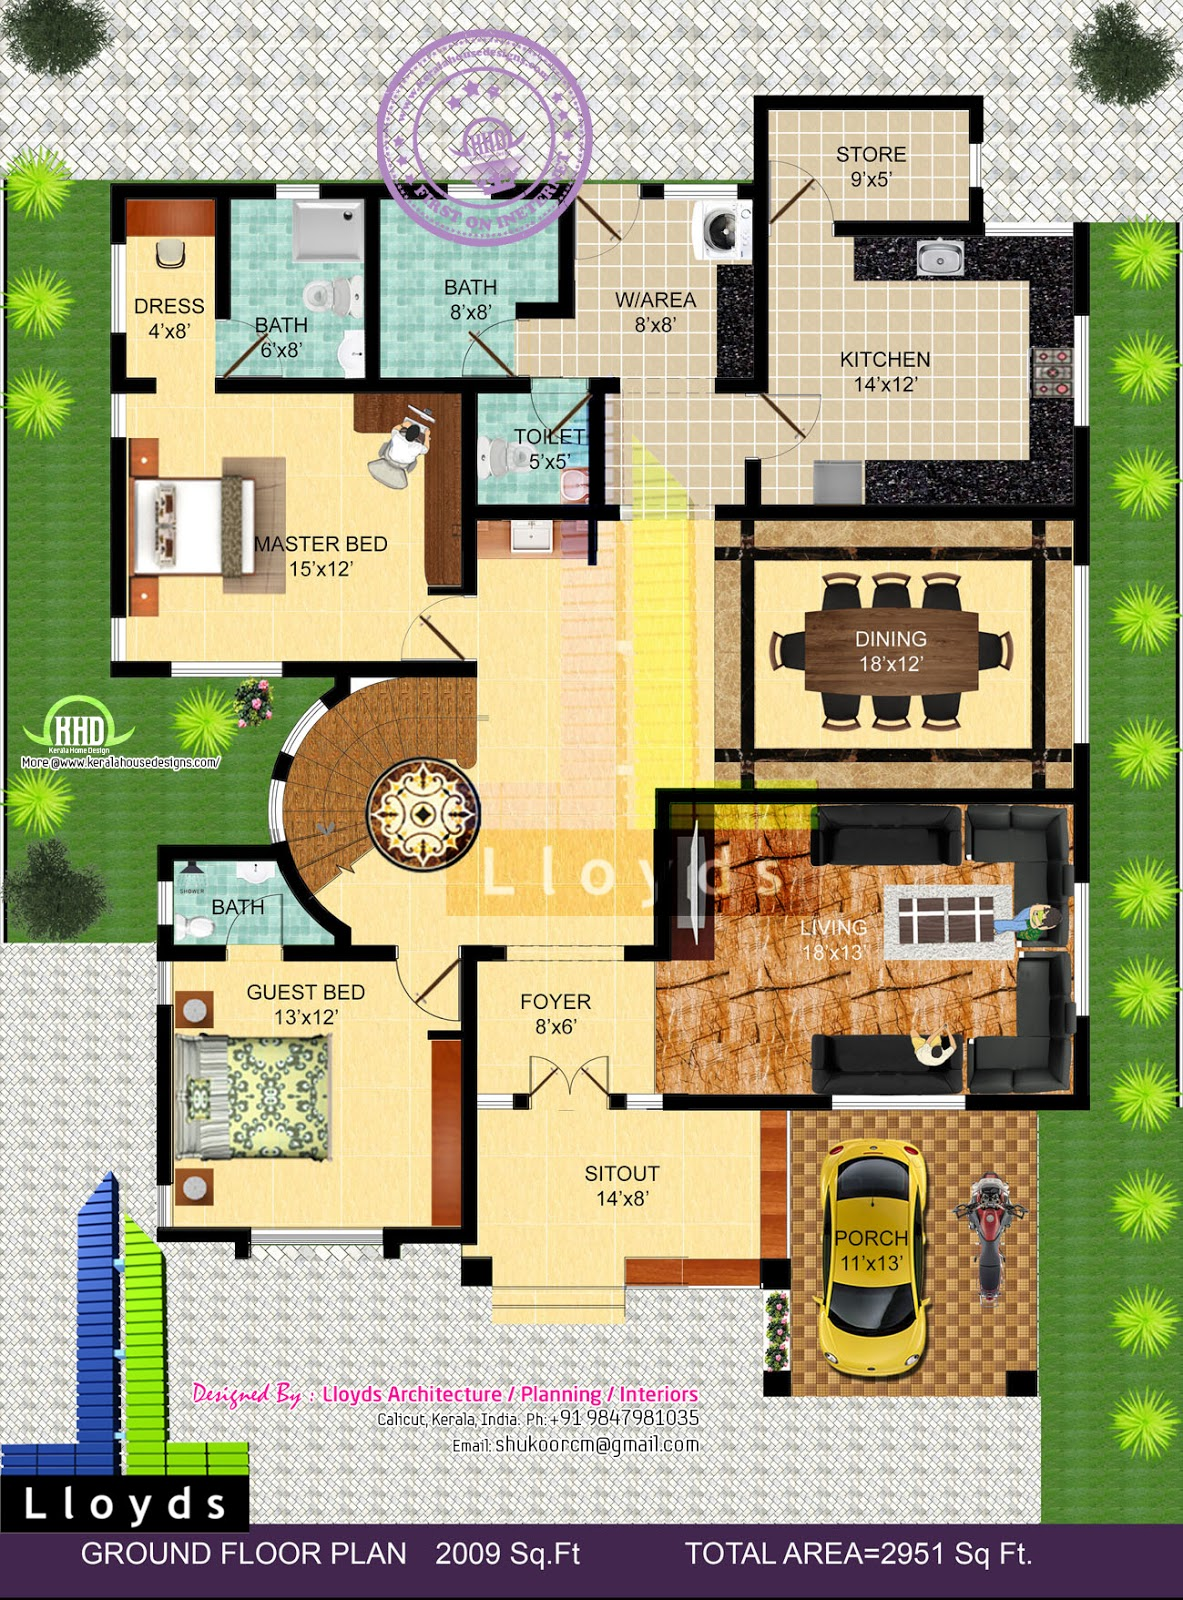 bedroom bungalow floor plan and 3D View Kerala home design and floor on bungalow house plans with basement, bungalow narrow lot house plan, bungalow floor plans, bungalow house designs, bungalow house plans french, bungalow house plans with attached garage, bungalow plan 3 bed room, bungalow house plans vintage, bungalow house plans beach, bungalow house plans with balcony, bungalow house plans in the philippines,